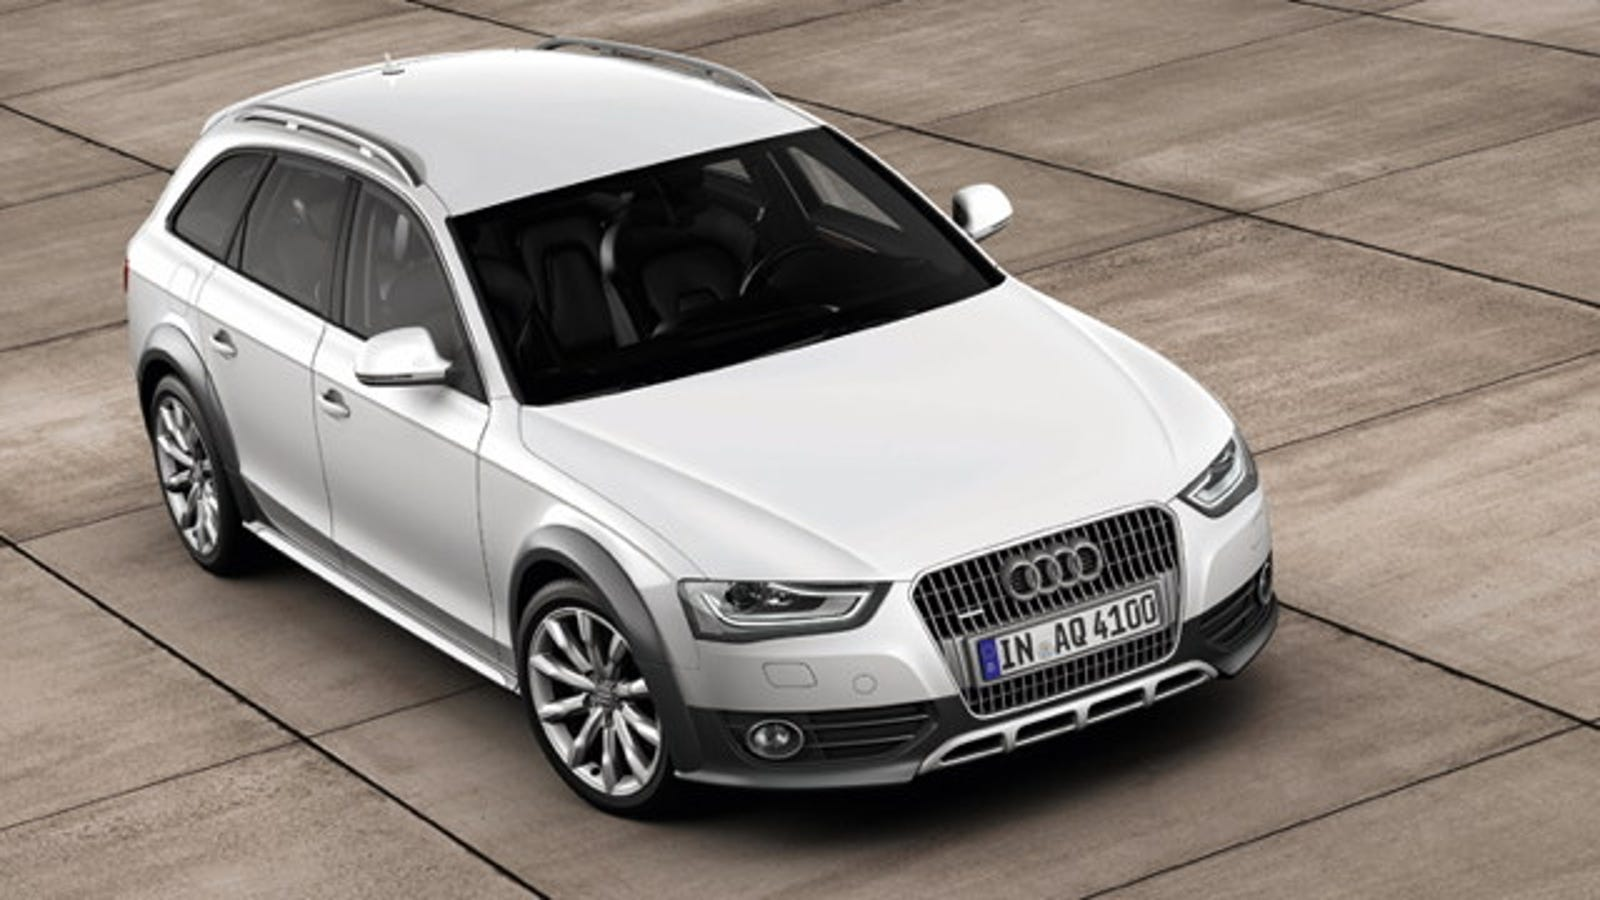 2012 audi s4 and a4 aluminum und rally wagon. Black Bedroom Furniture Sets. Home Design Ideas